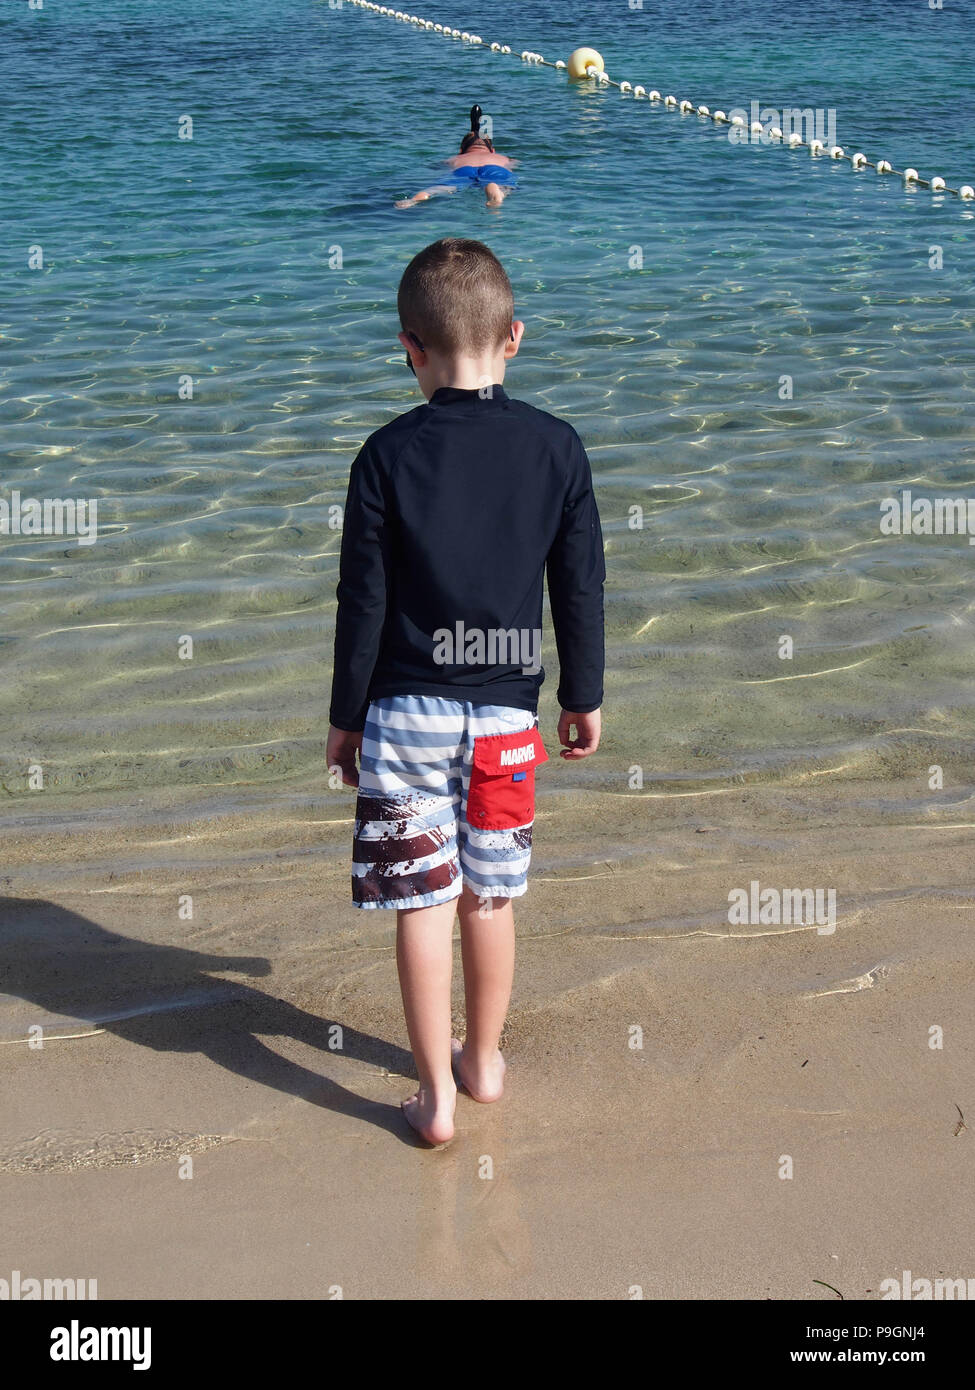 The back of a boy wearing a UV protective top on the beach - Stock Image